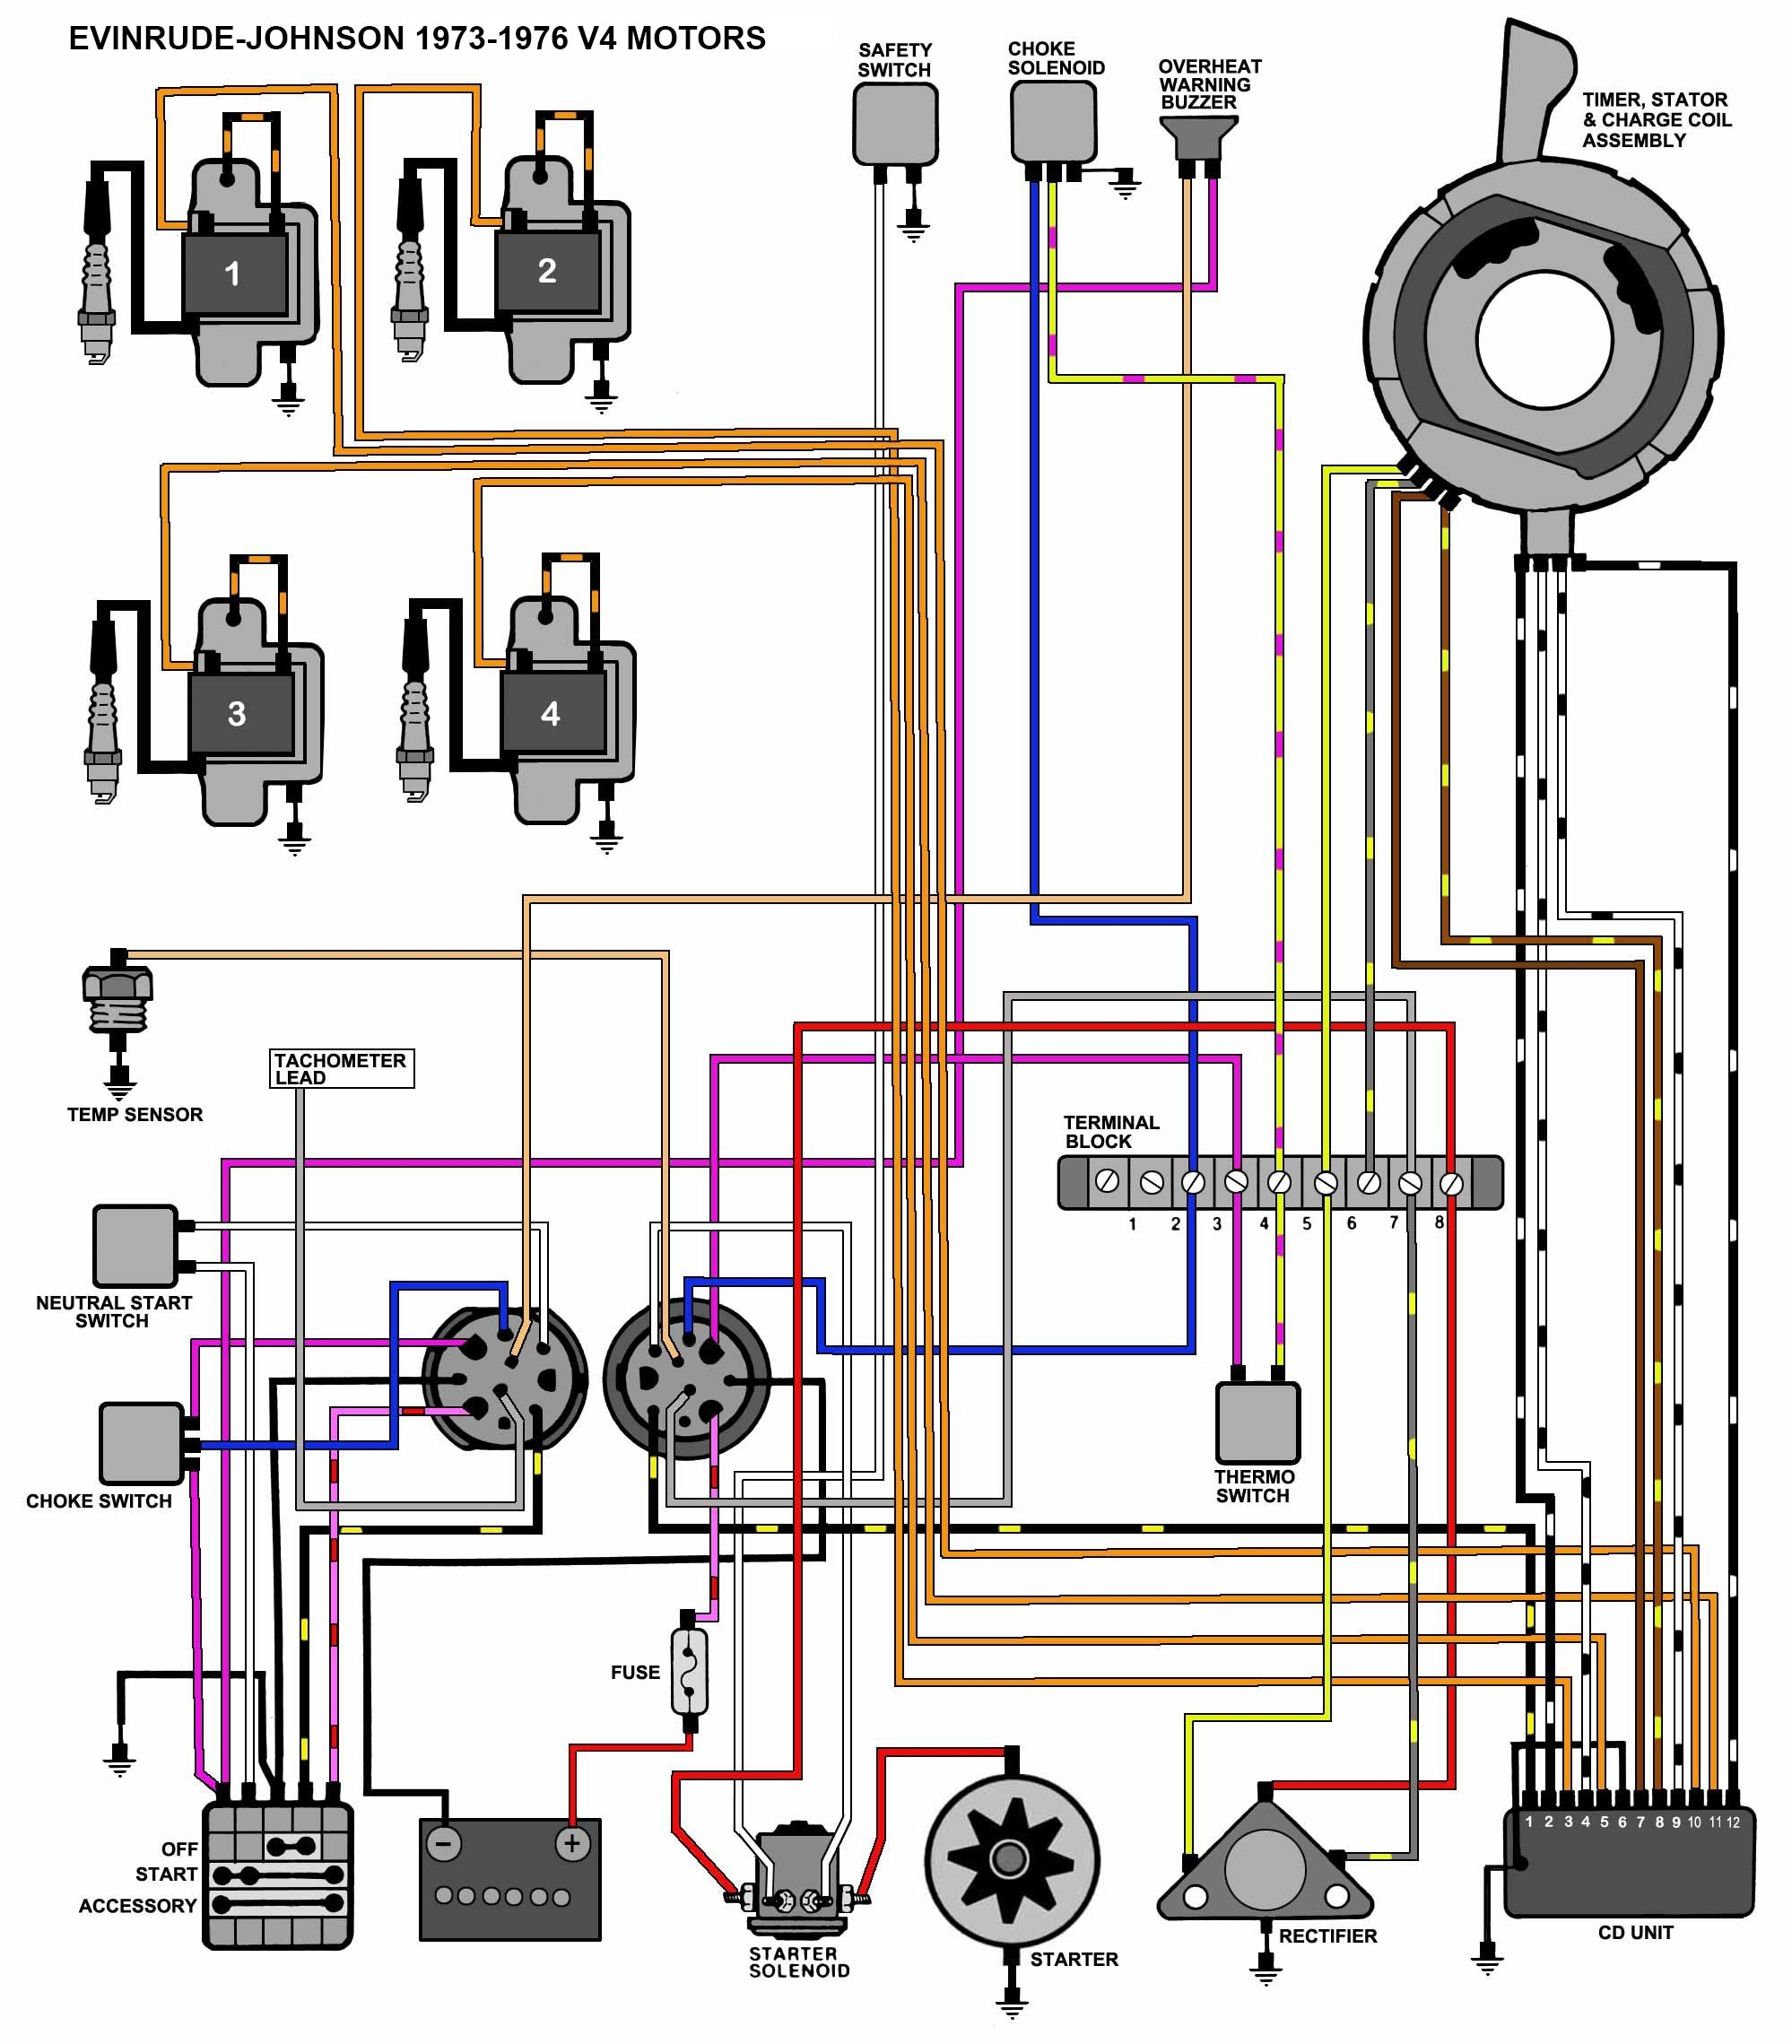 evinrude ignition switch wiring diagram with 1969 omc 55 wiring throughout 70 hp evinrude wiring diagram?resize\\\\\\\\\\\\\\\\\\\\\\\\\\\\\\\=665%2C759\\\\\\\\\\\\\\\\\\\\\\\\\\\\\\\&ssl\\\\\\\\\\\\\\\\\\\\\\\\\\\\\\\=1 1999 70 hp evinrude wiring diagram wiring diagram simonand  at virtualis.co